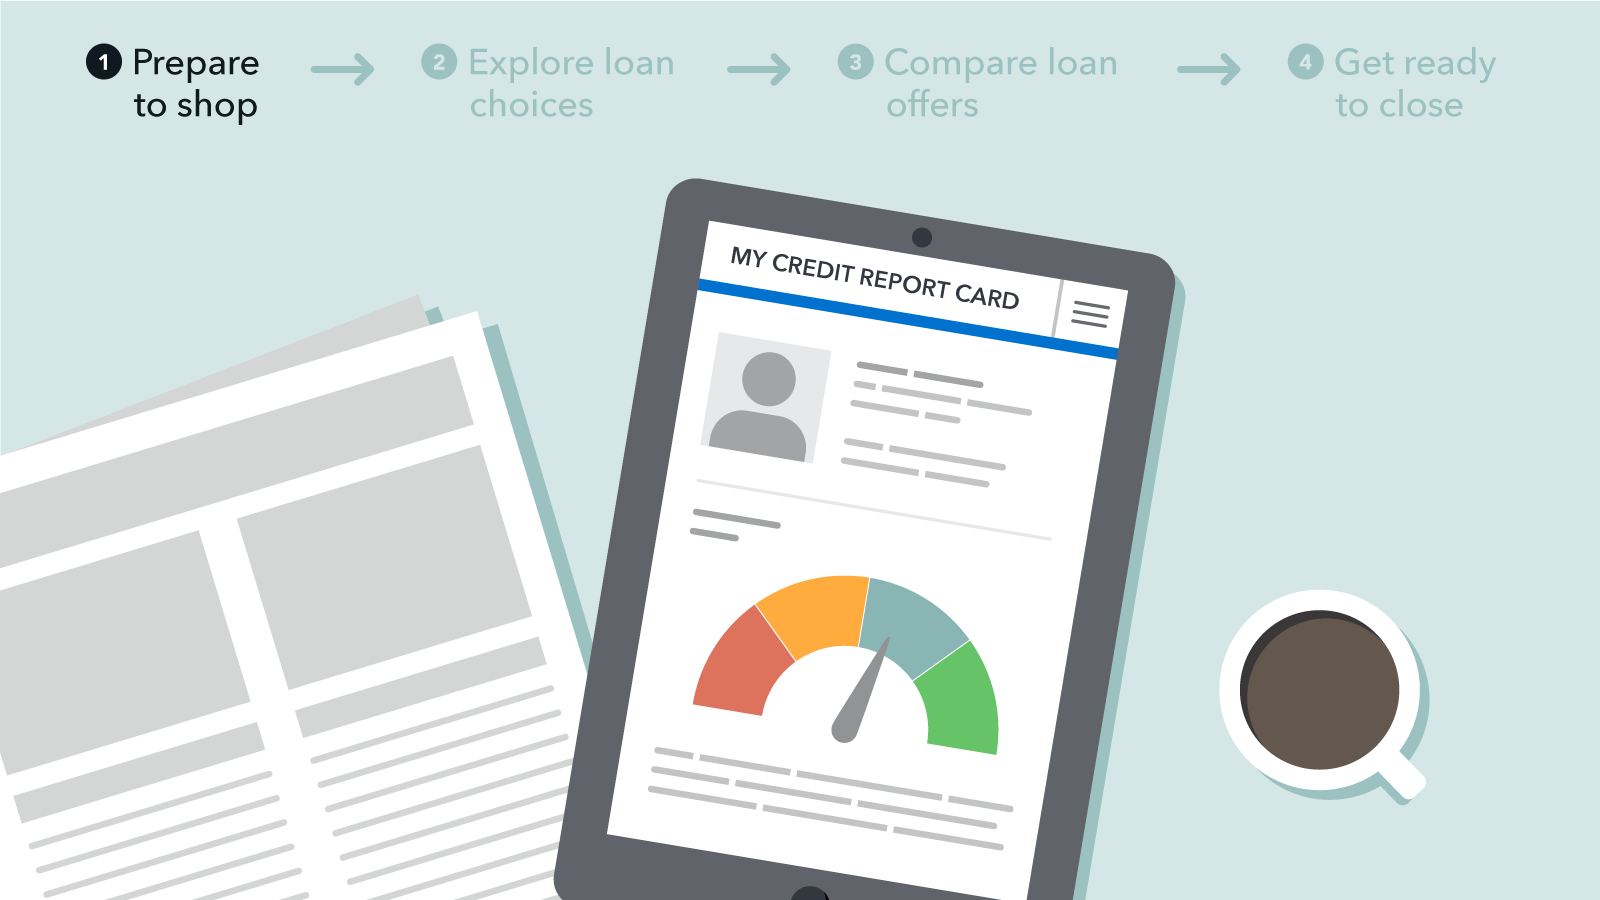 Buying A Home? The First Step Is To Check Your Credit   Consumer - Free Printable Credit Report